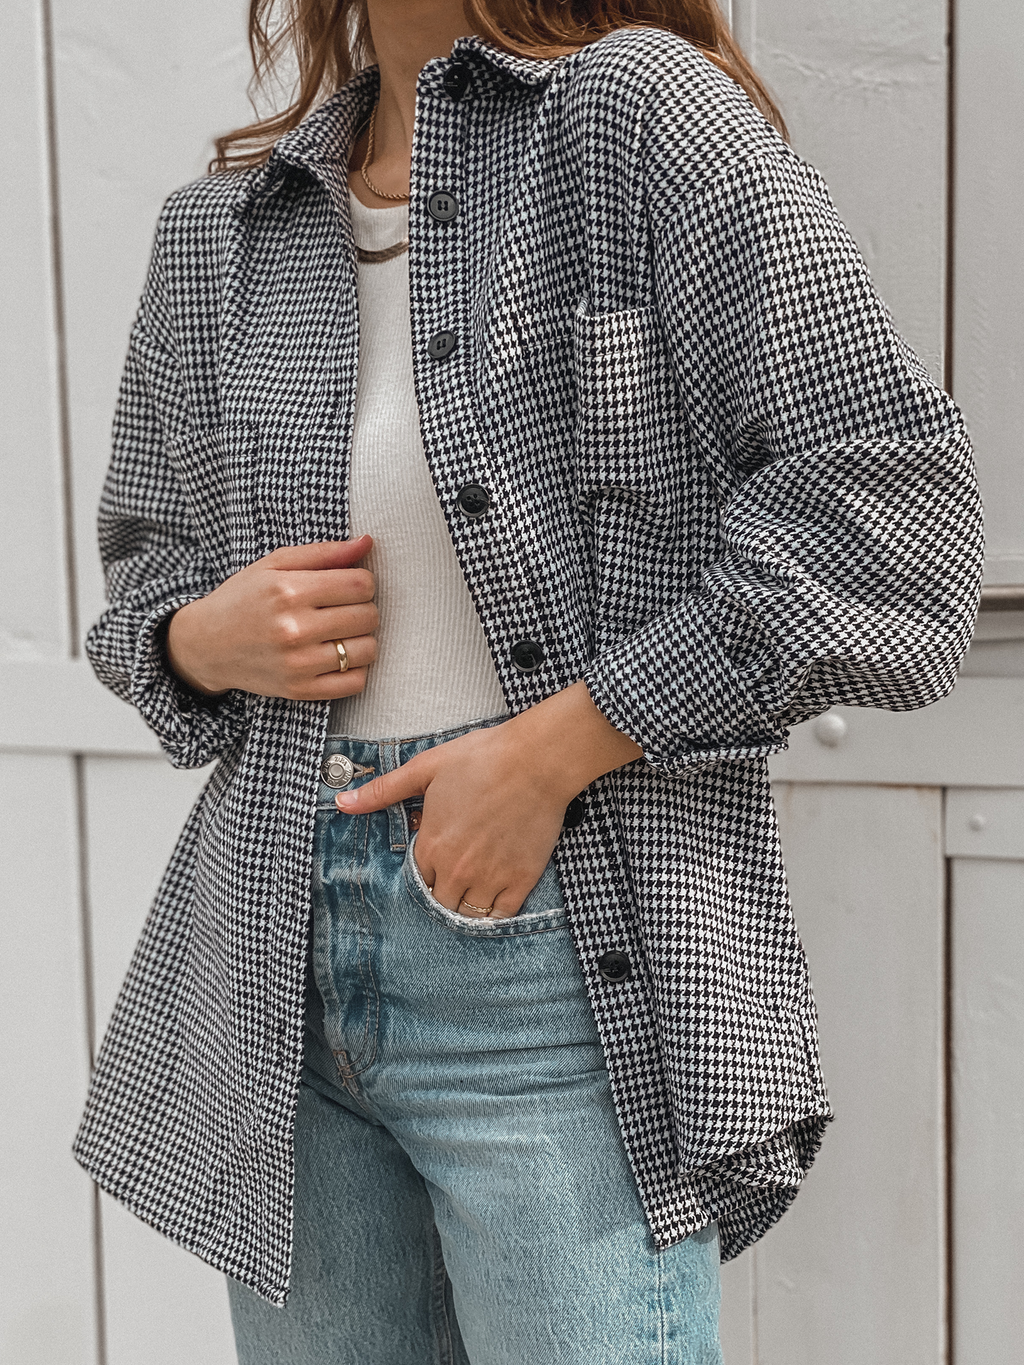 Houndstooth Shacket - Stitch And Feather